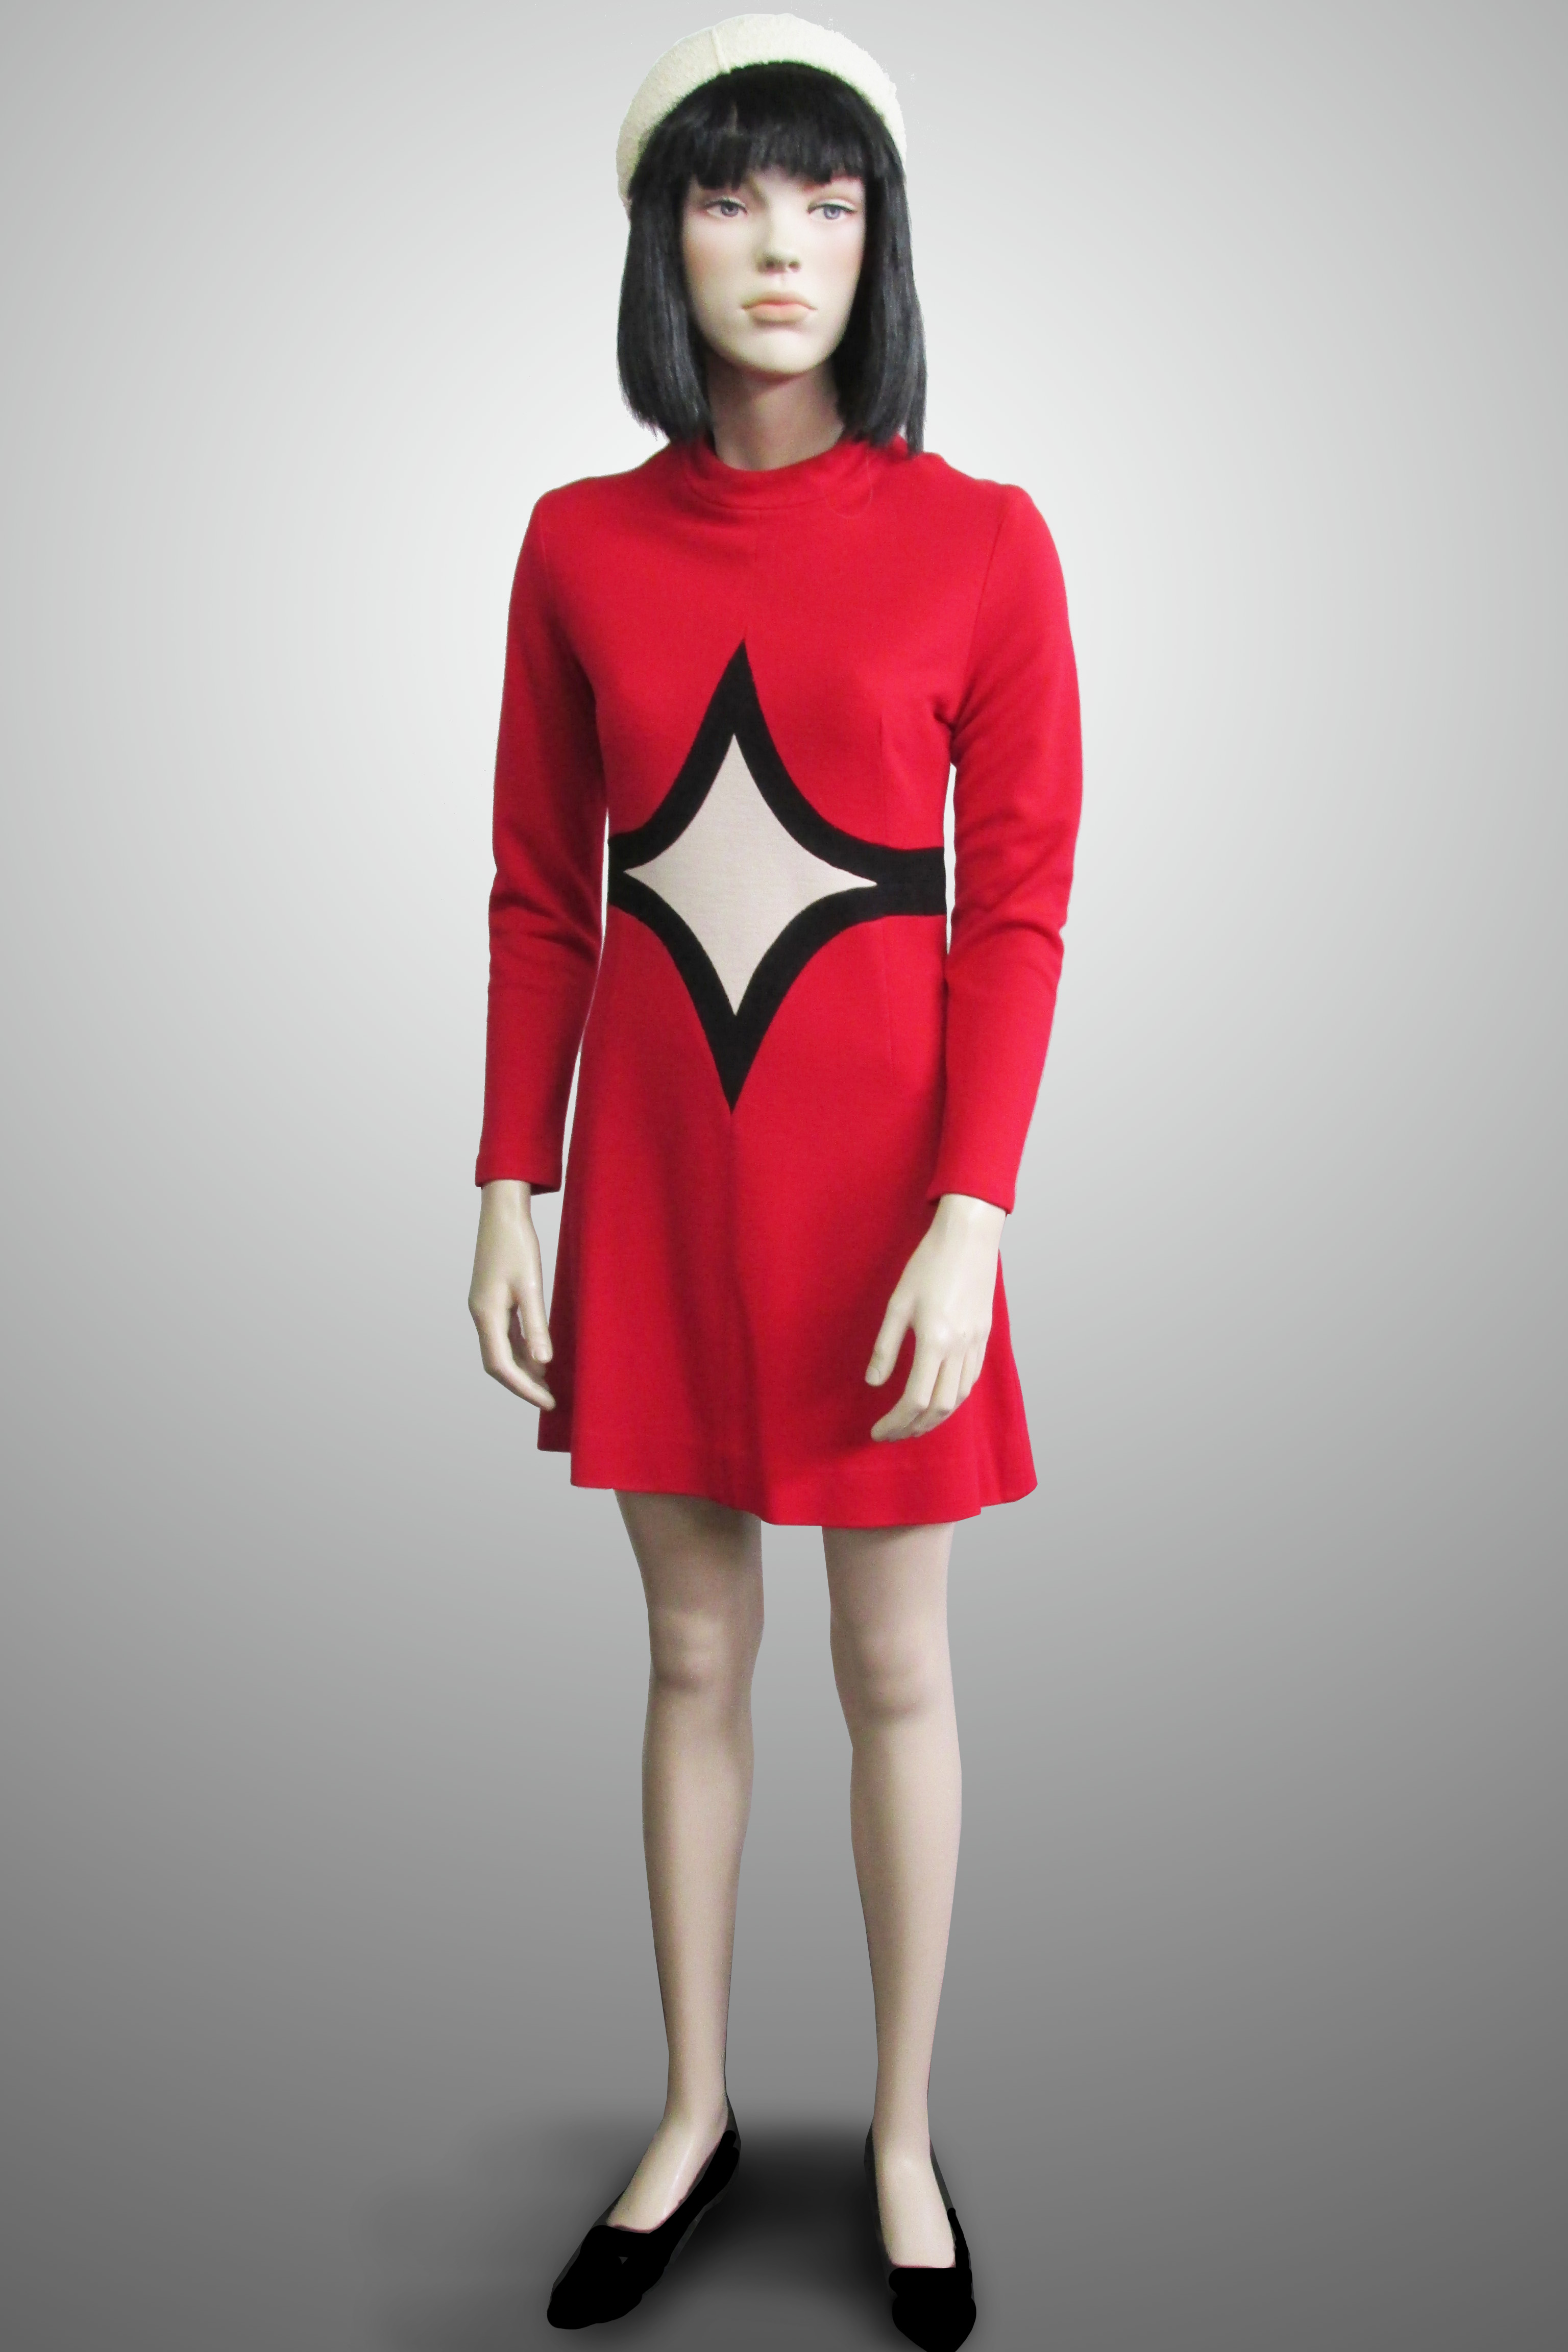 Dress Red Knit with White/Black Diamond Detail 1960s